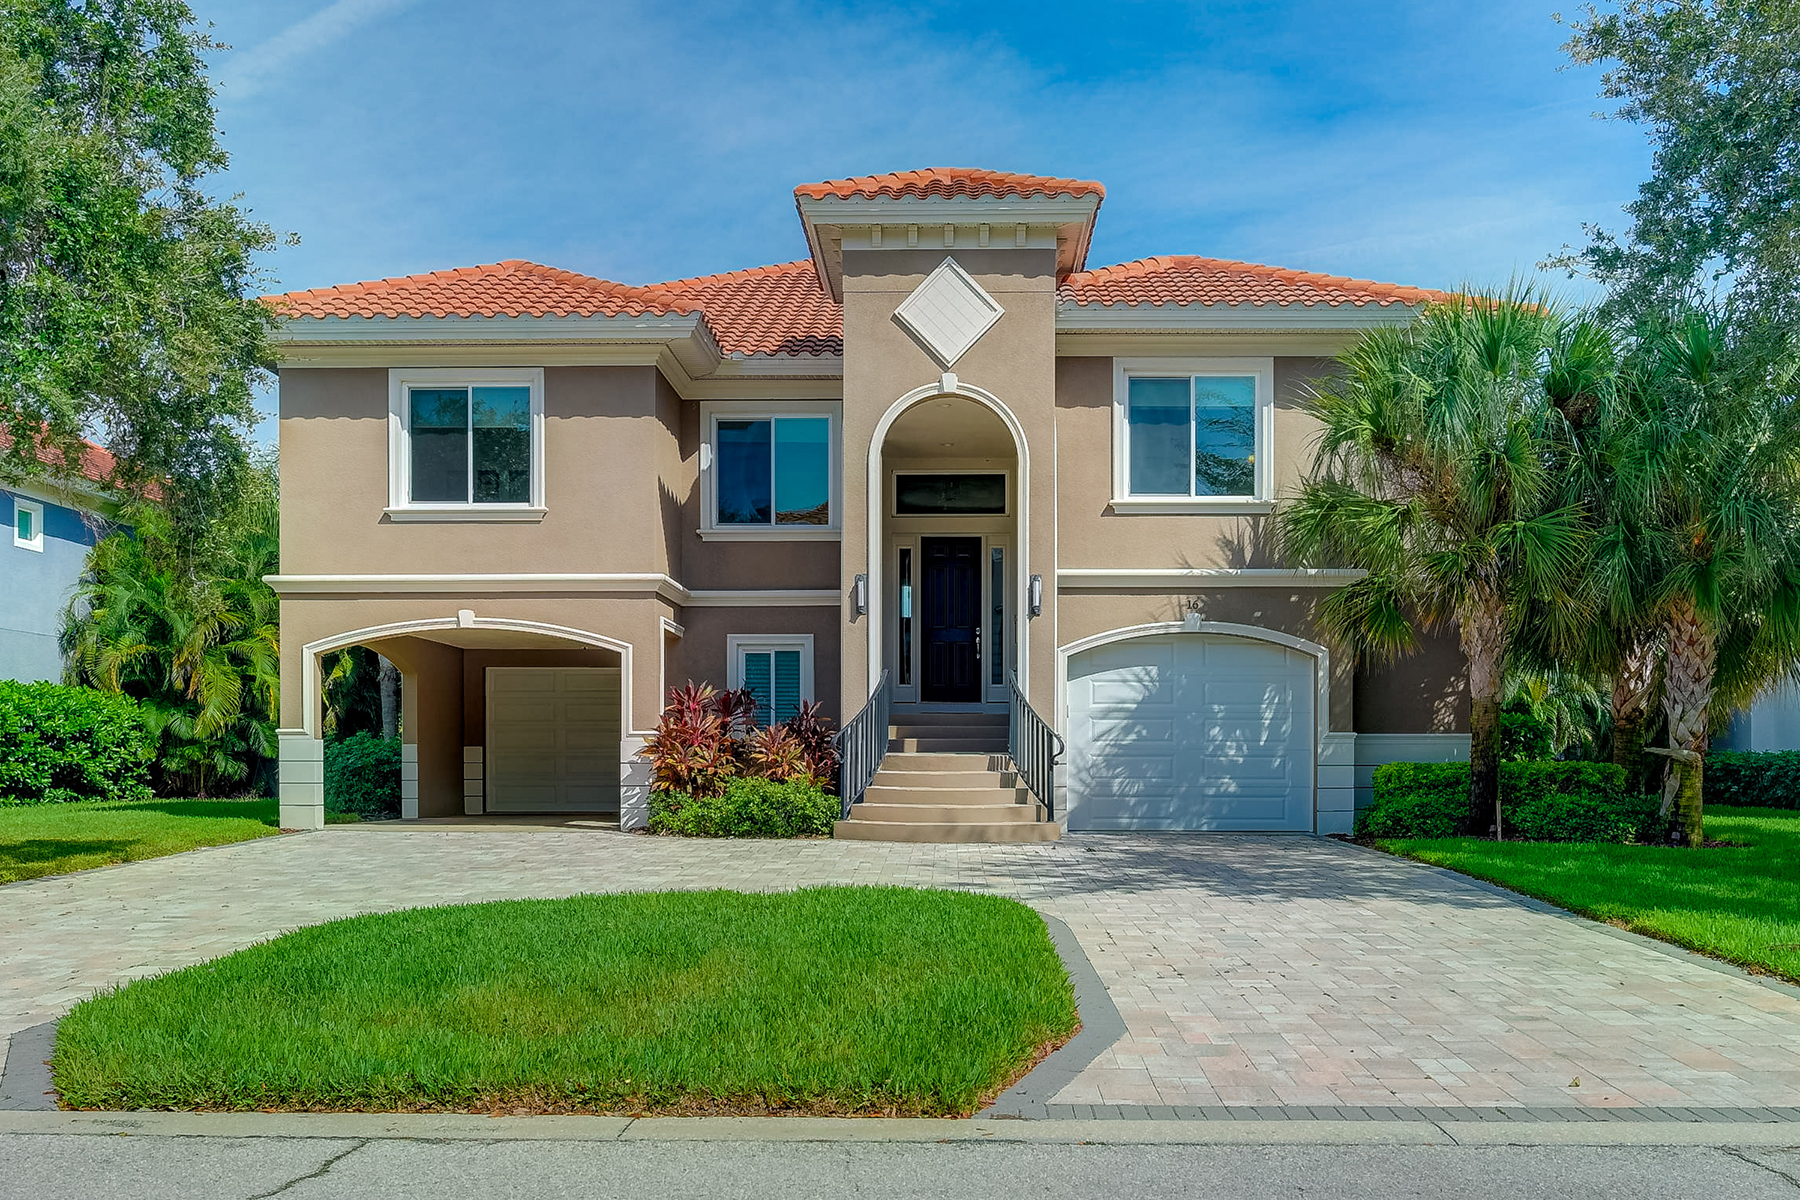 Single Family Homes for Sale at 16 Bayfront Ct S St. Petersburg, Florida 33711 United States